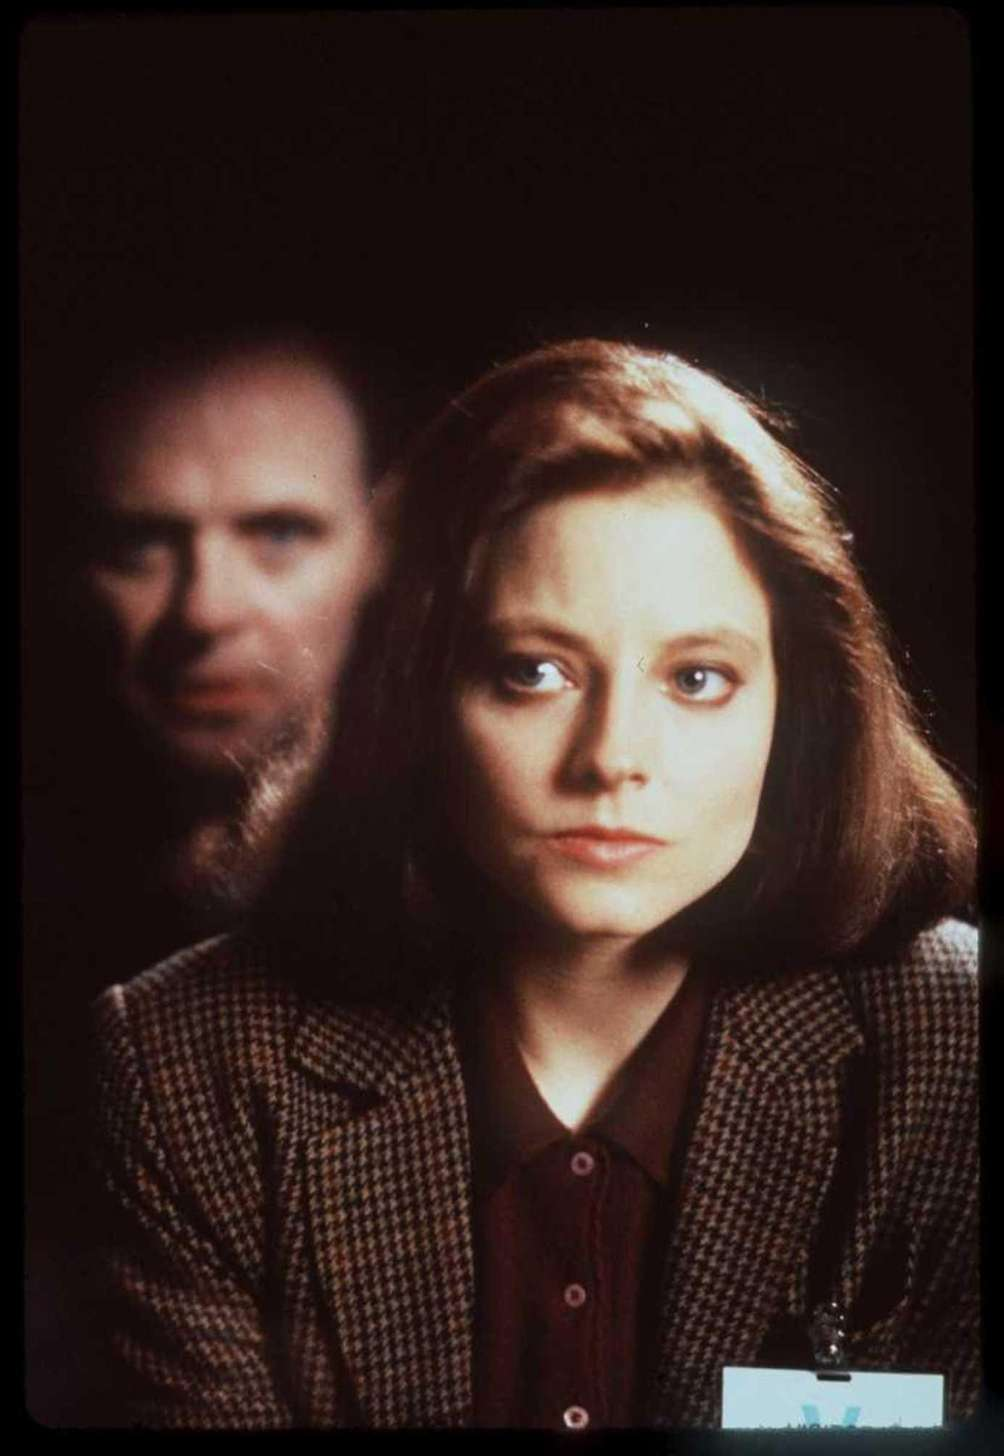 1991 - Jodie Foster - The Silence of